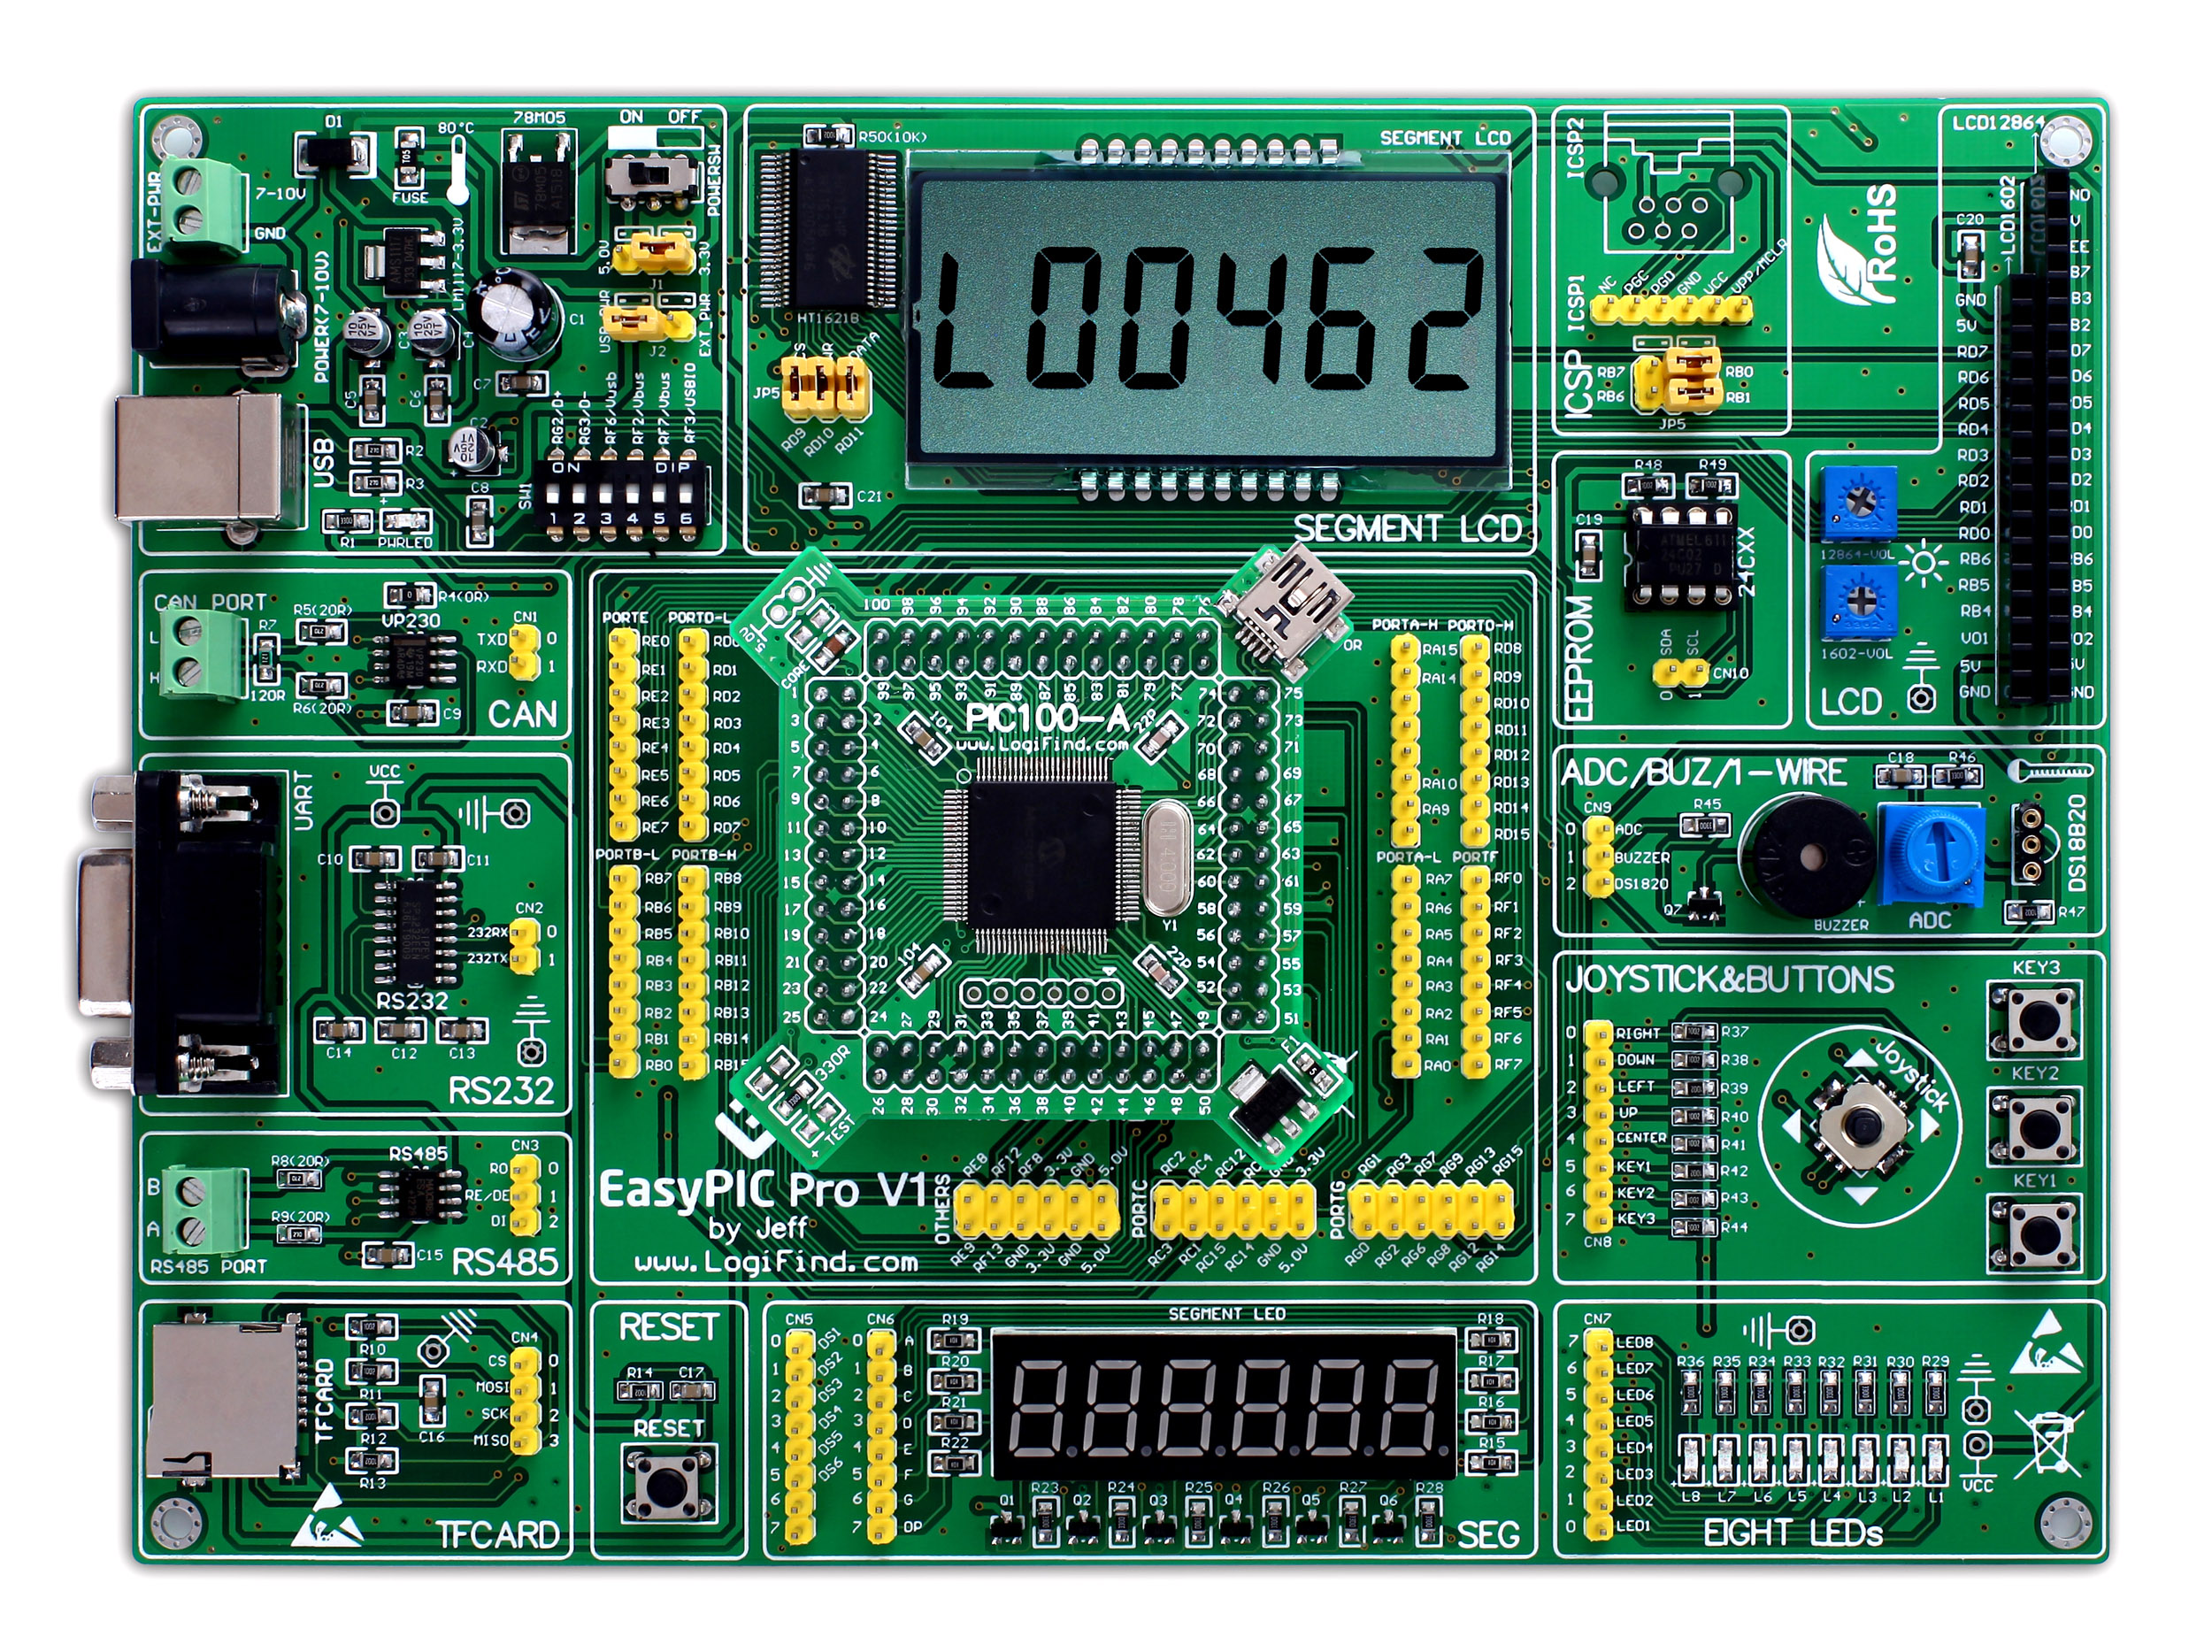 EasyPIC Pro Learning Development Board DsPIC PIC32 PIC24 with DsPIC33FJ256GP710